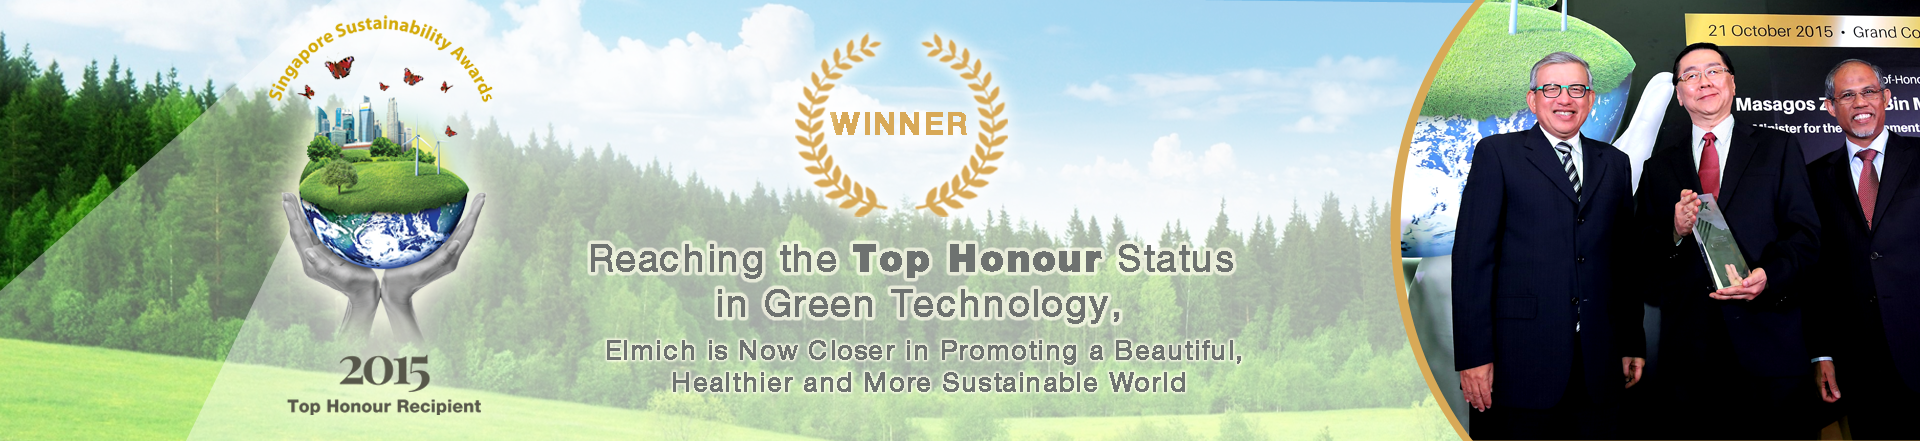 Sustainability Award banner